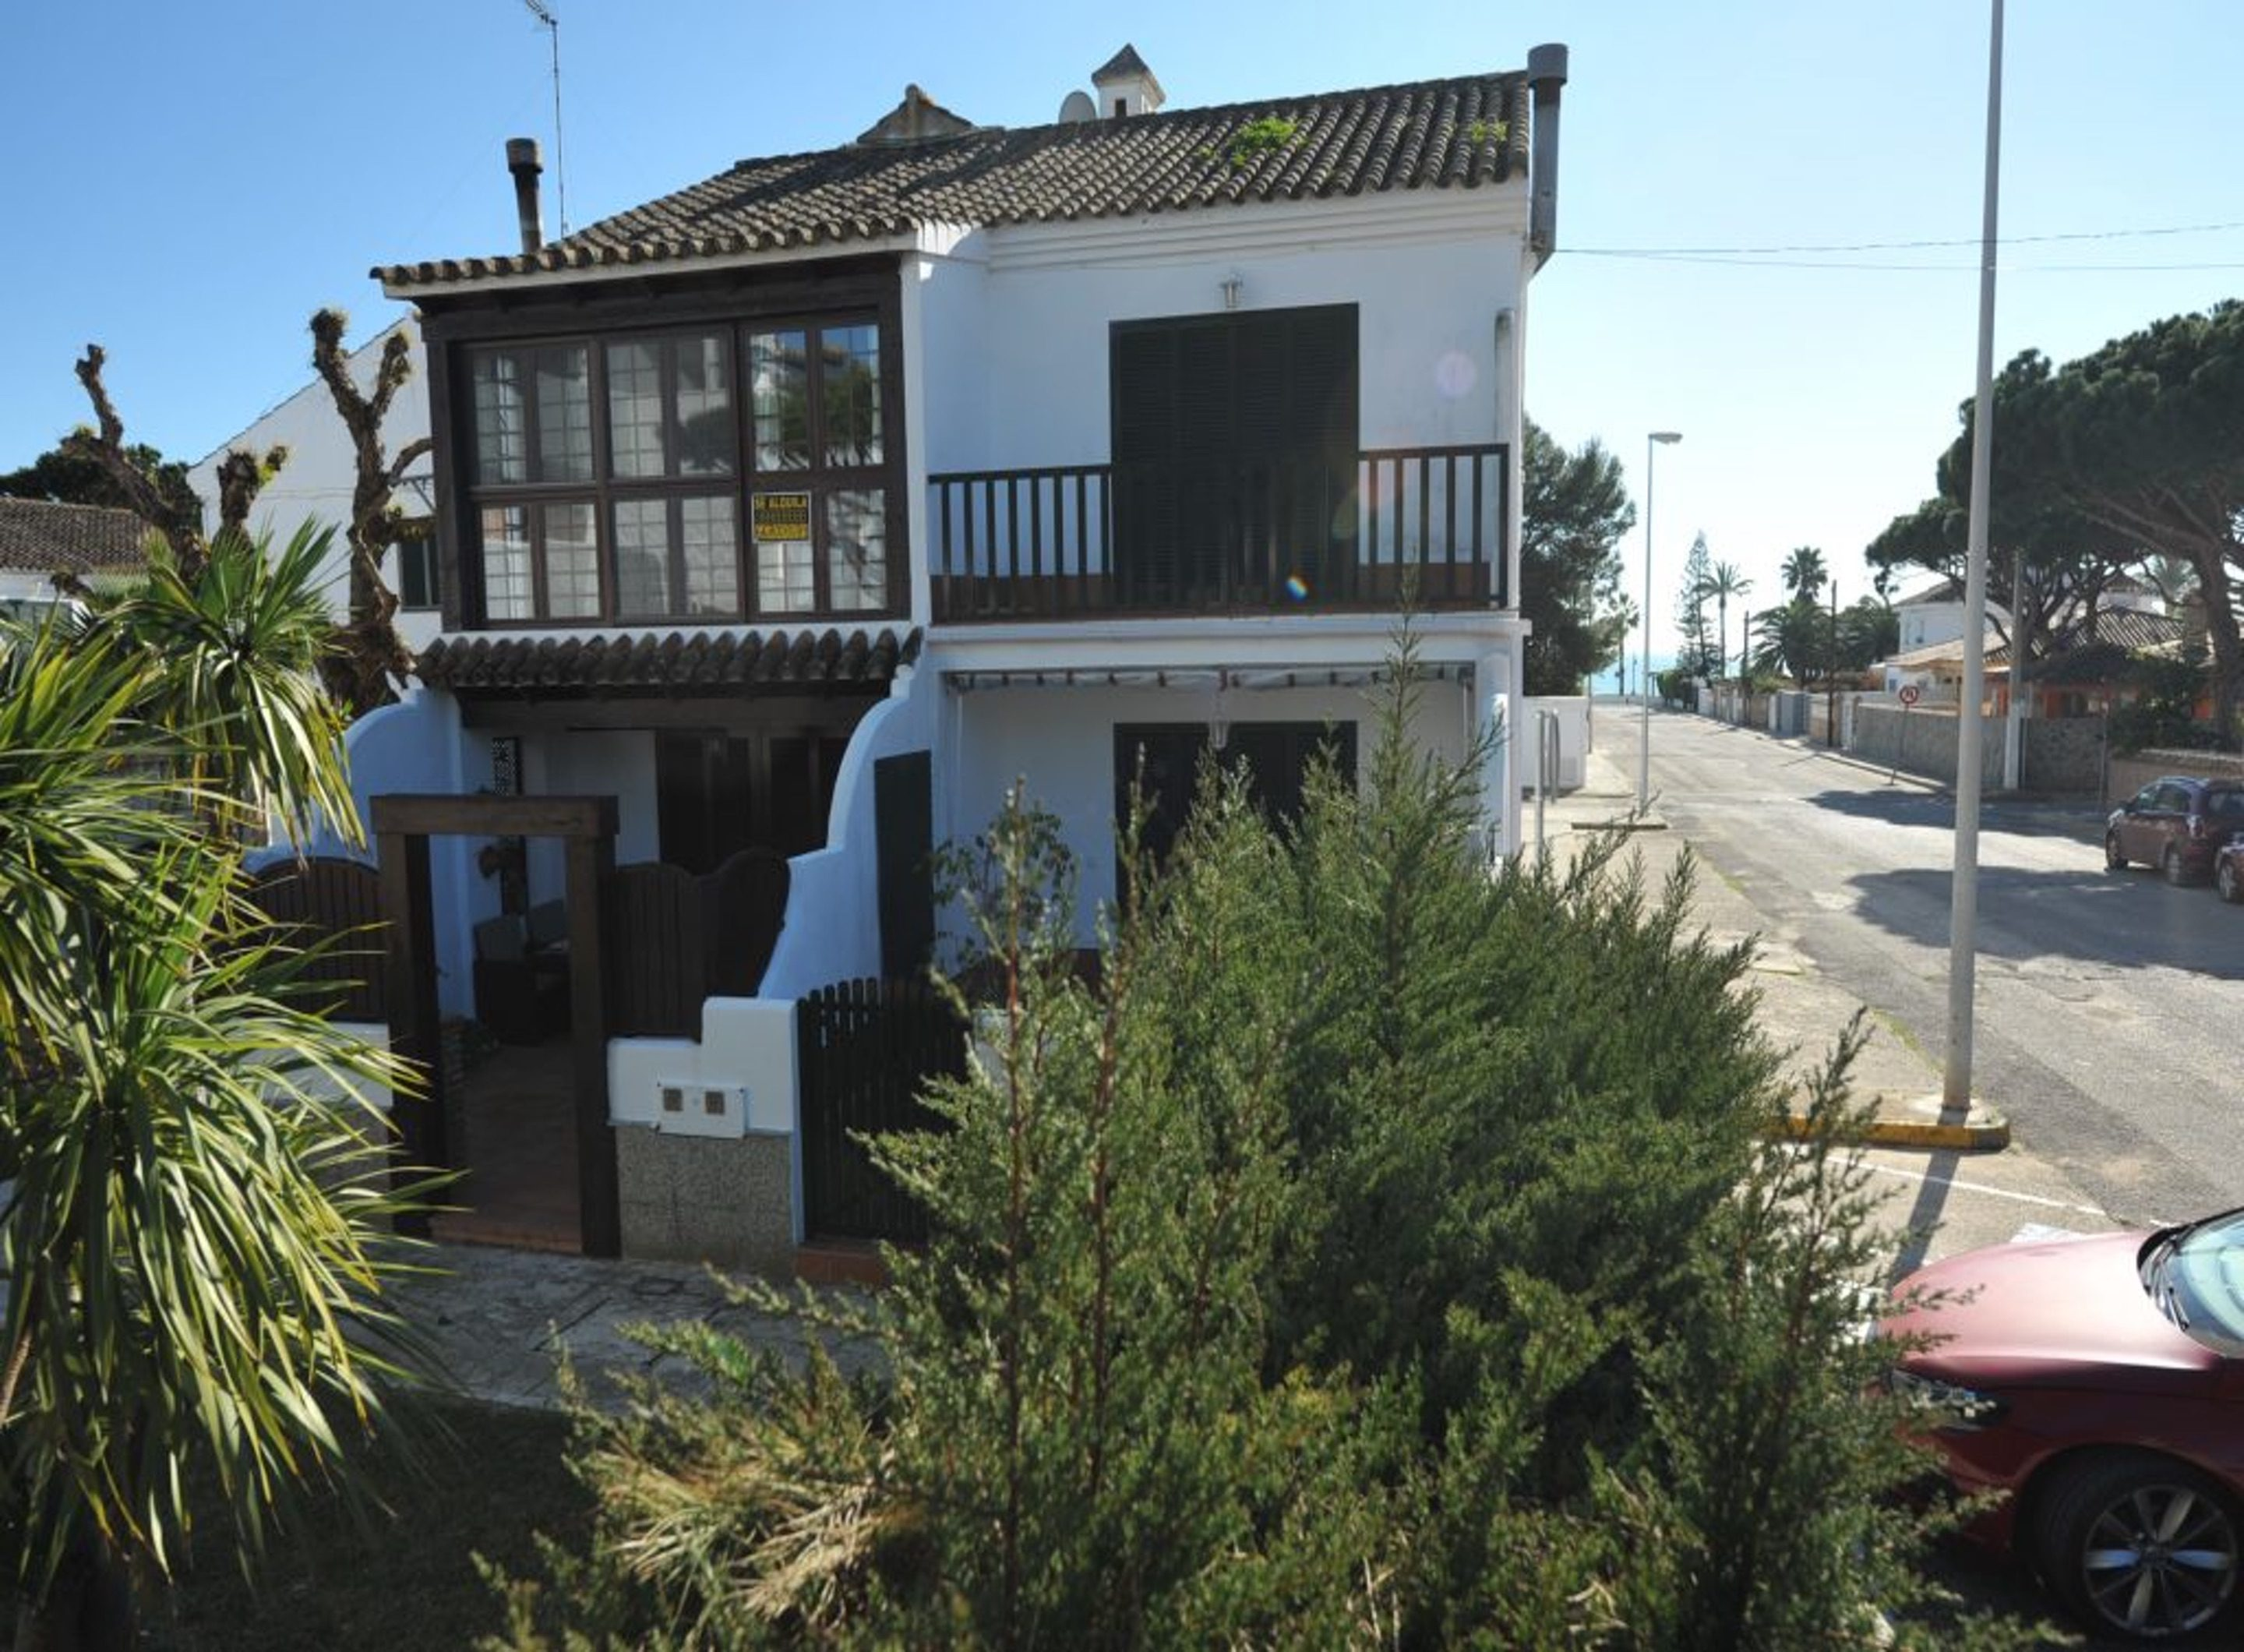 4BR Townhouse in 150m to the Beach by Rafleys in La Barrosa, Chiclana